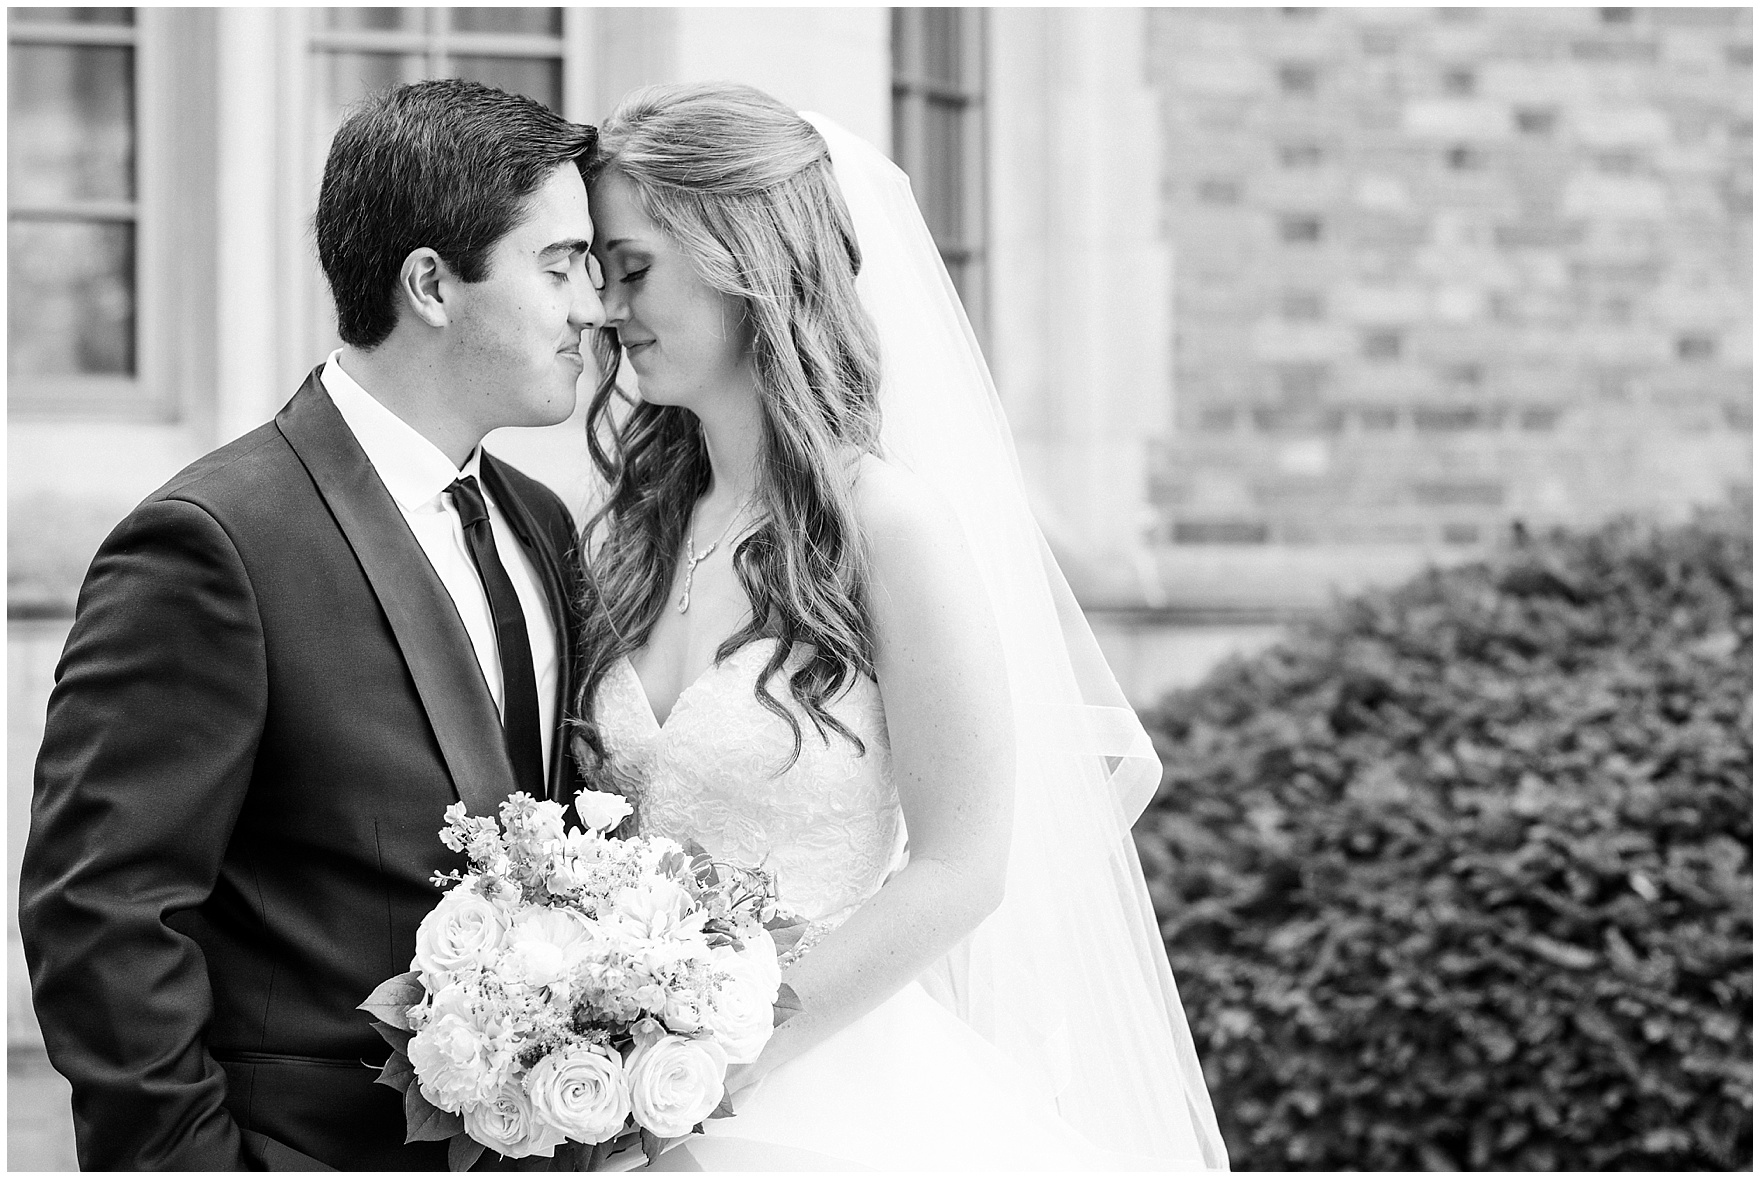 The bride and groom share a quiet moment after their University of Notre Dame wedding.